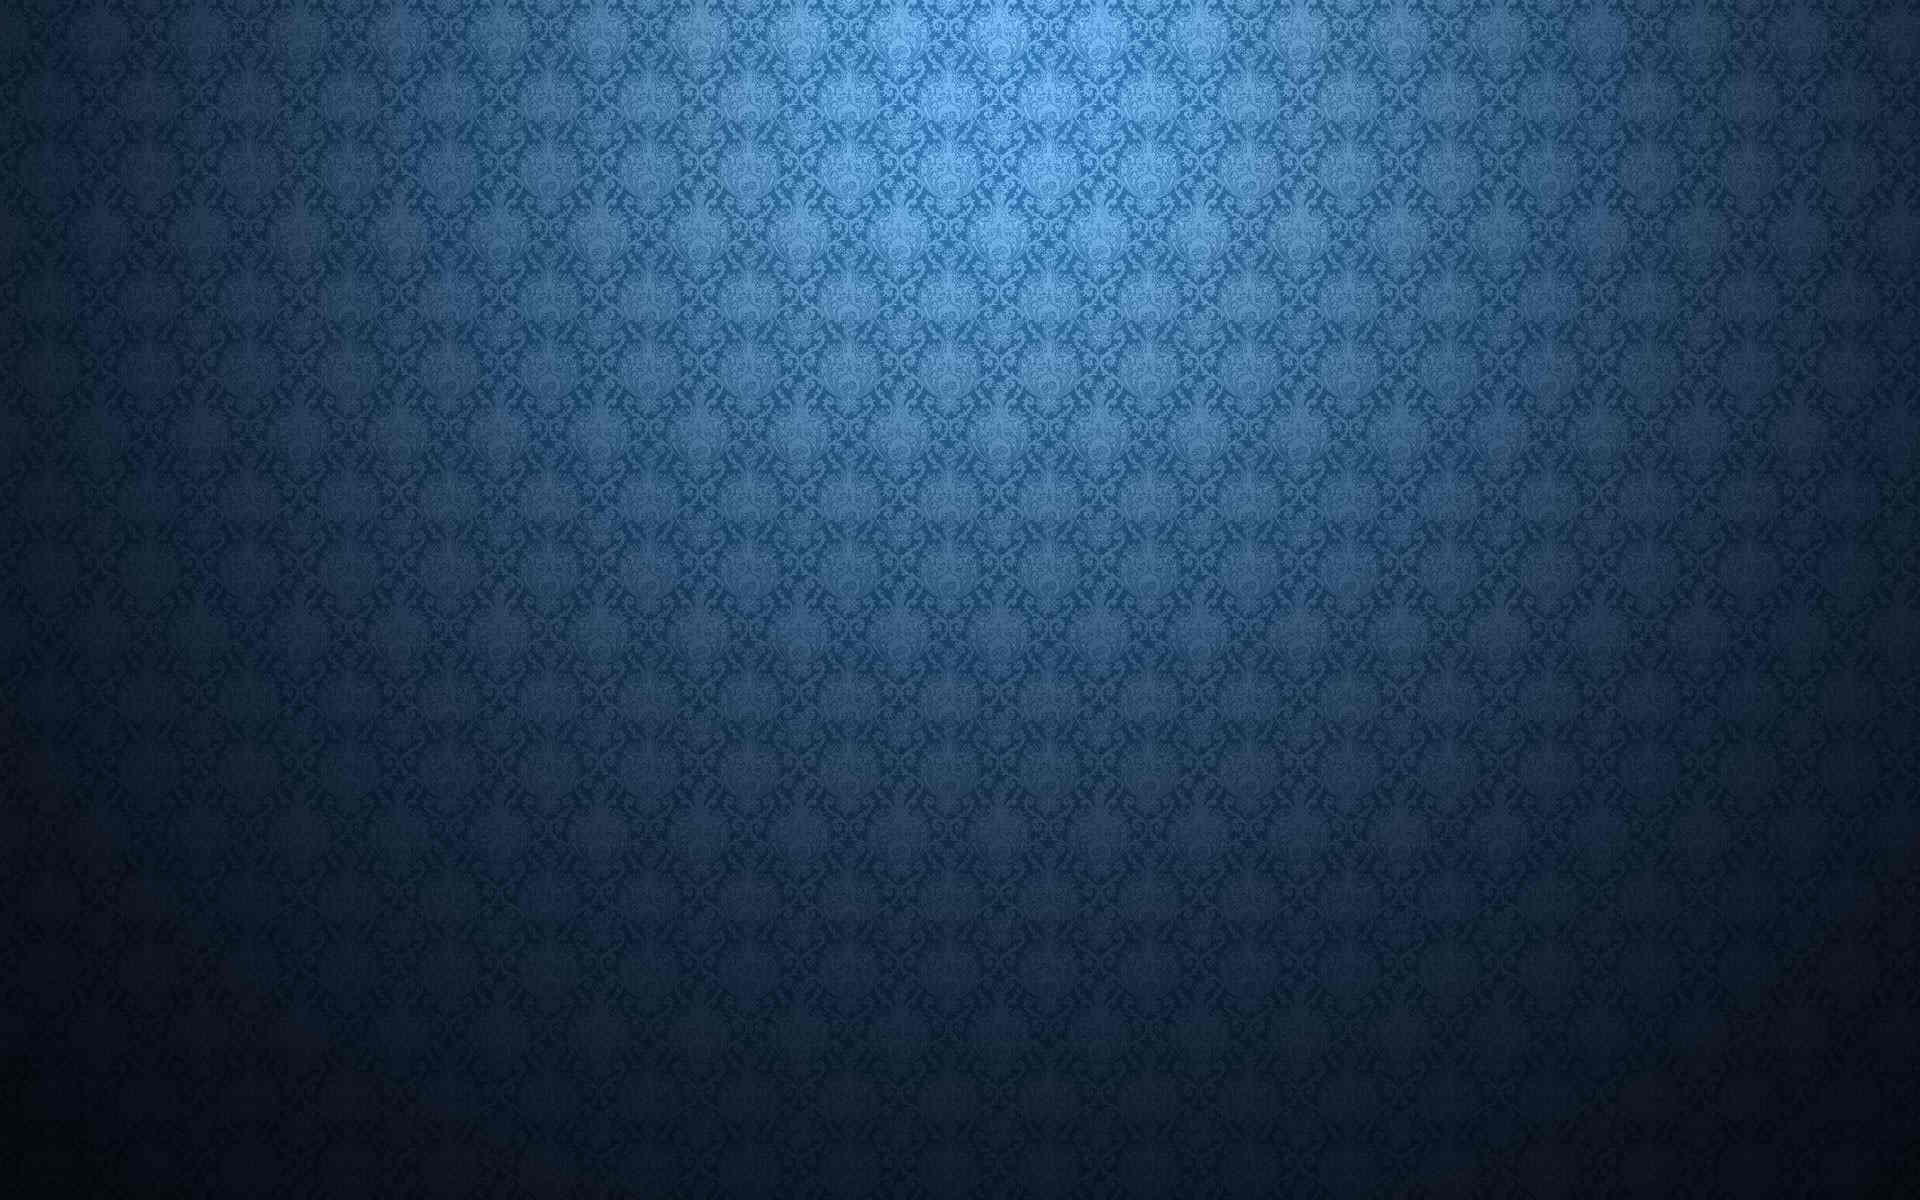 Basic Blue Web Background